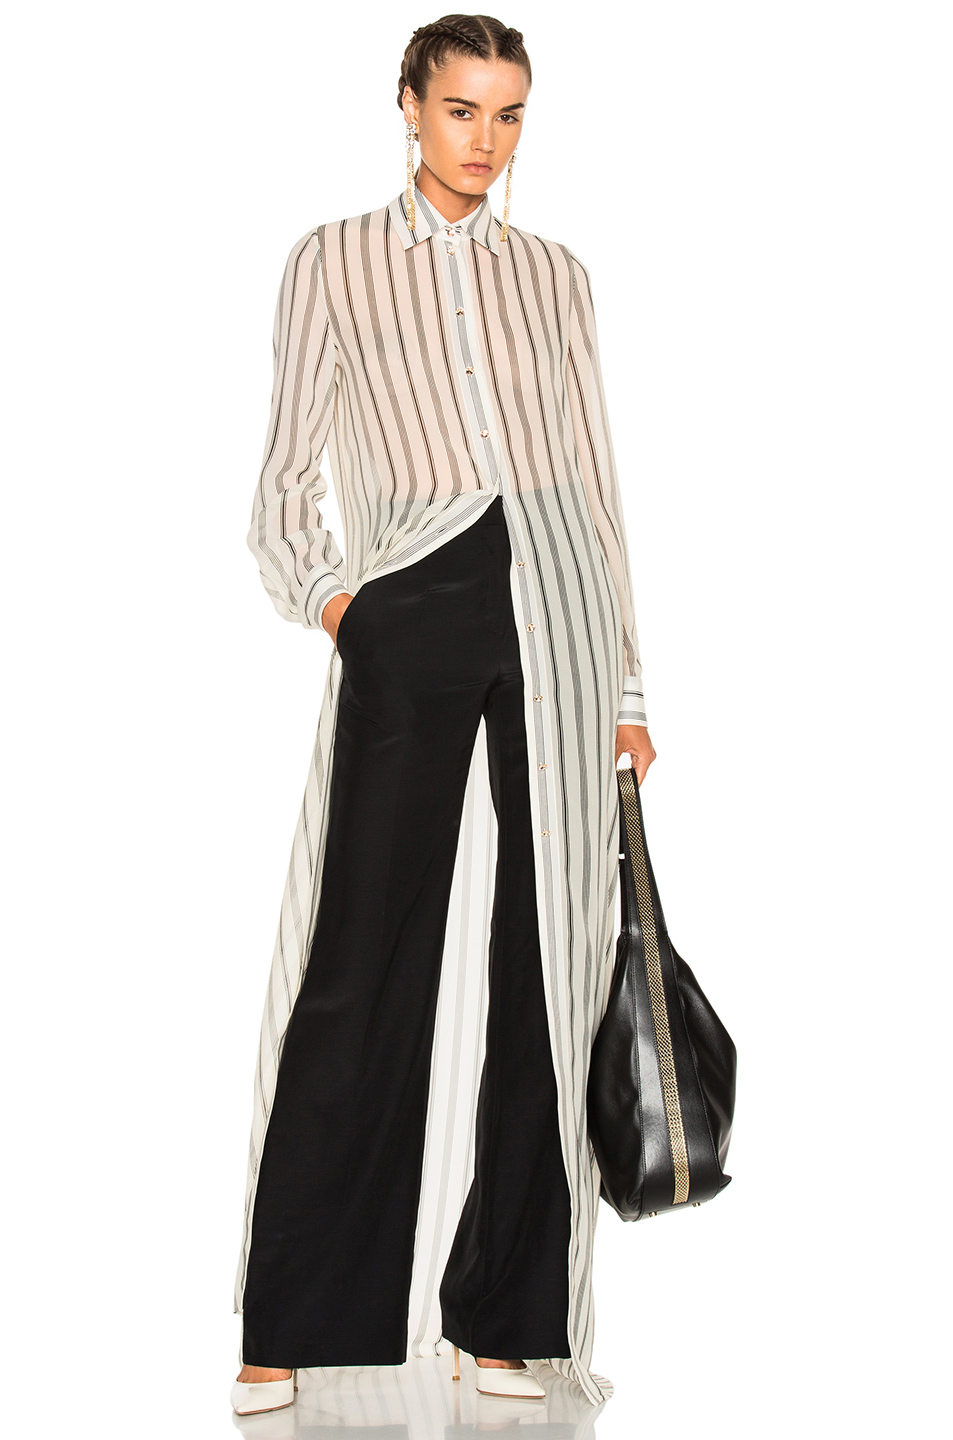 Lanvin Long Sleeve Maxi Dress in White,Stripes